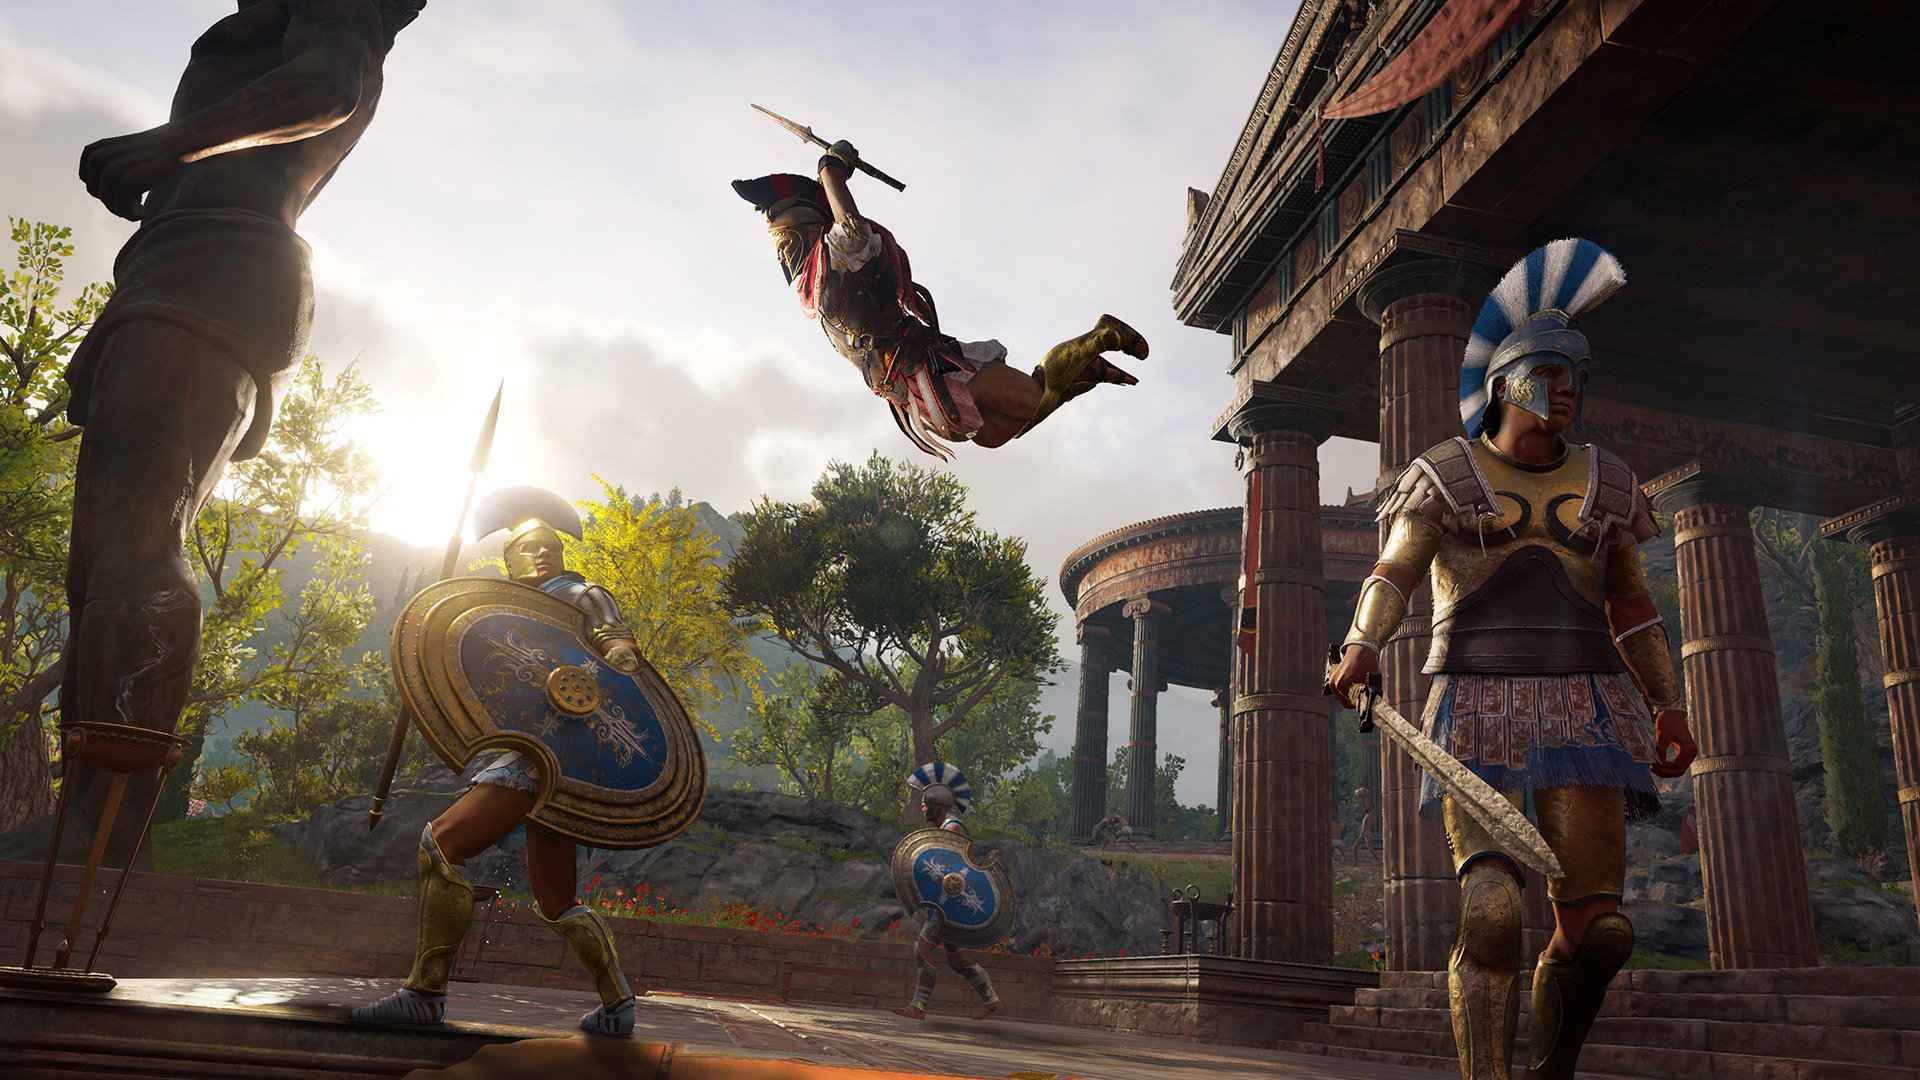 Assassin S Creed Odyssey Patch 1 03 Now Available To Download On Ps4